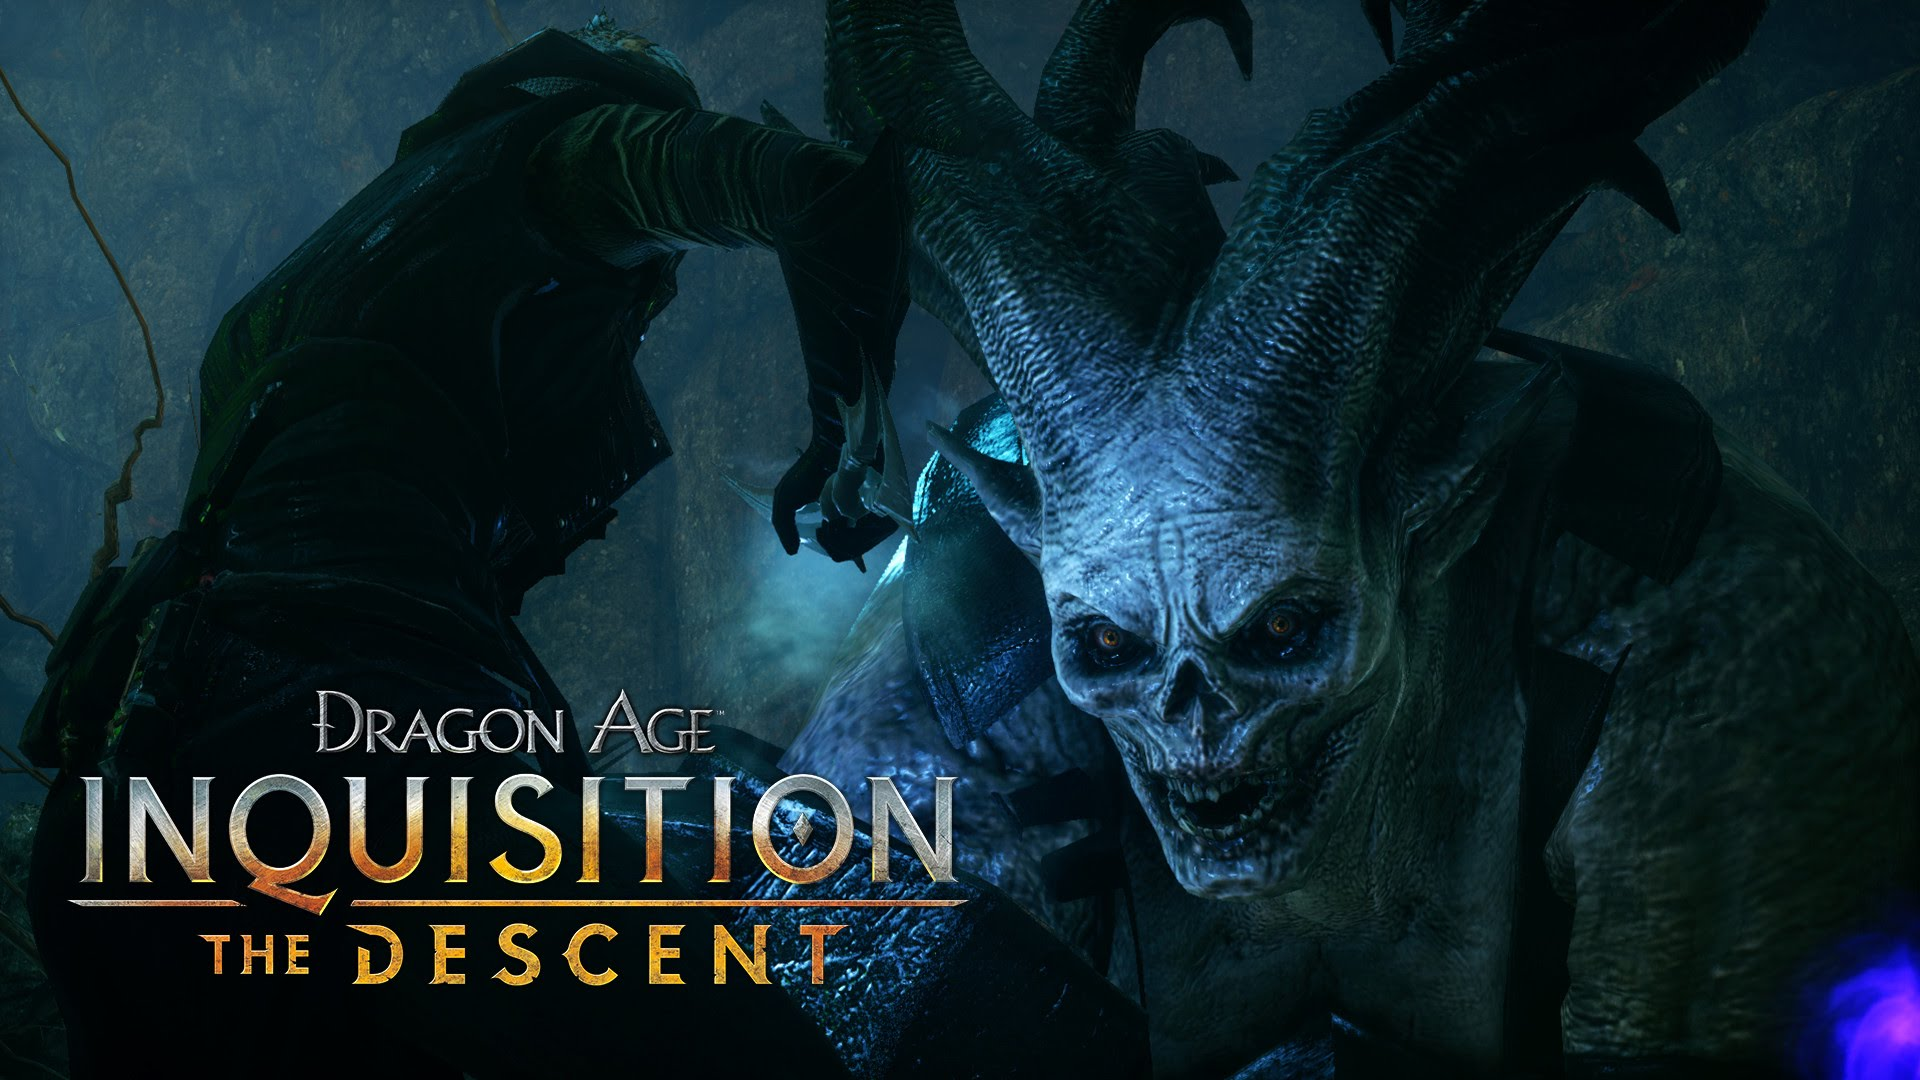 DRAGON AGE™: INQUISITION Offizieller Trailer – Der Abstieg (DLC)